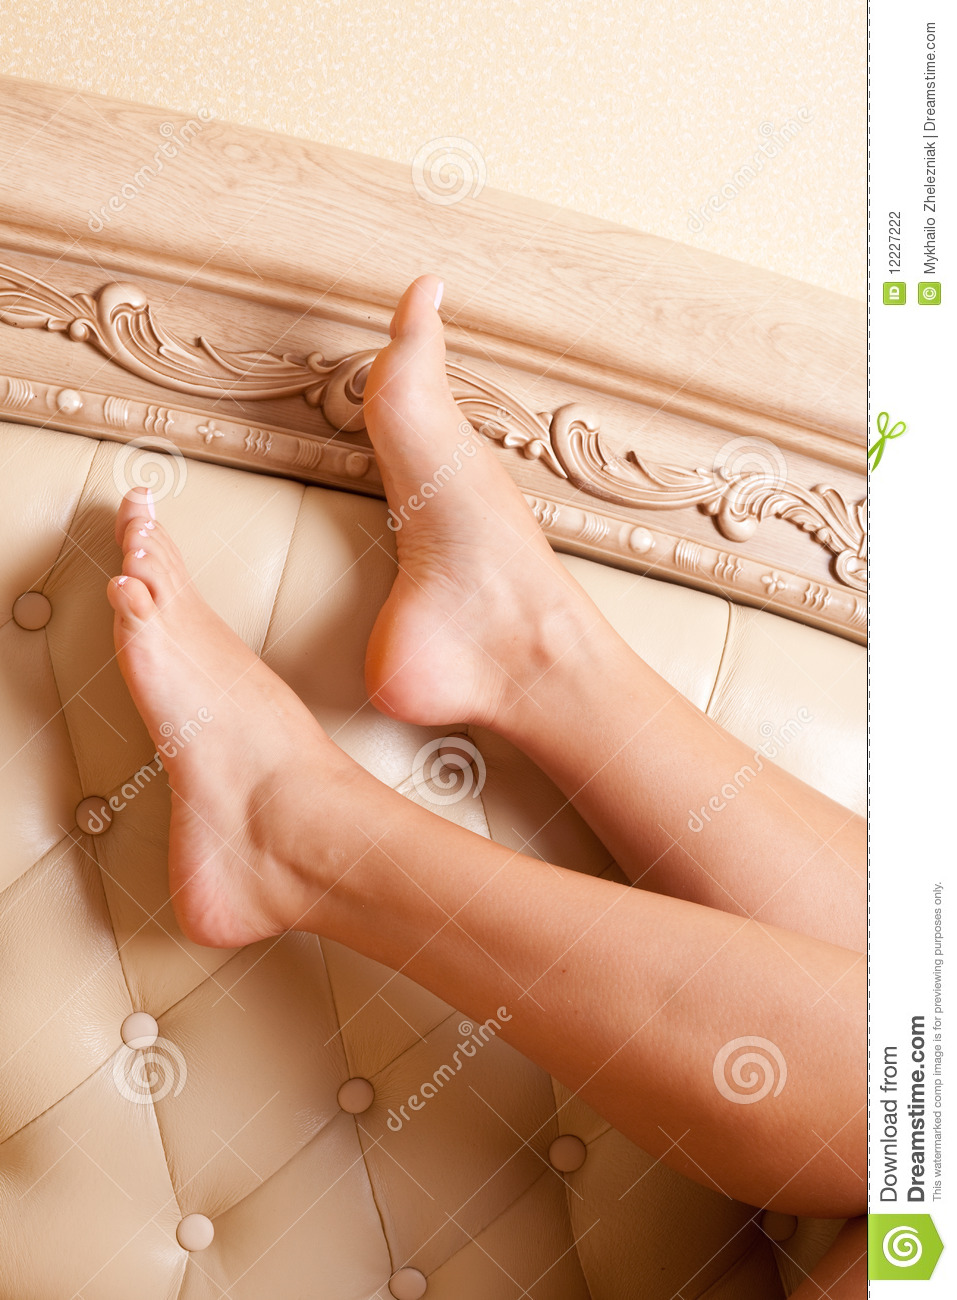 Women's feet on the background of beautiful furniture.